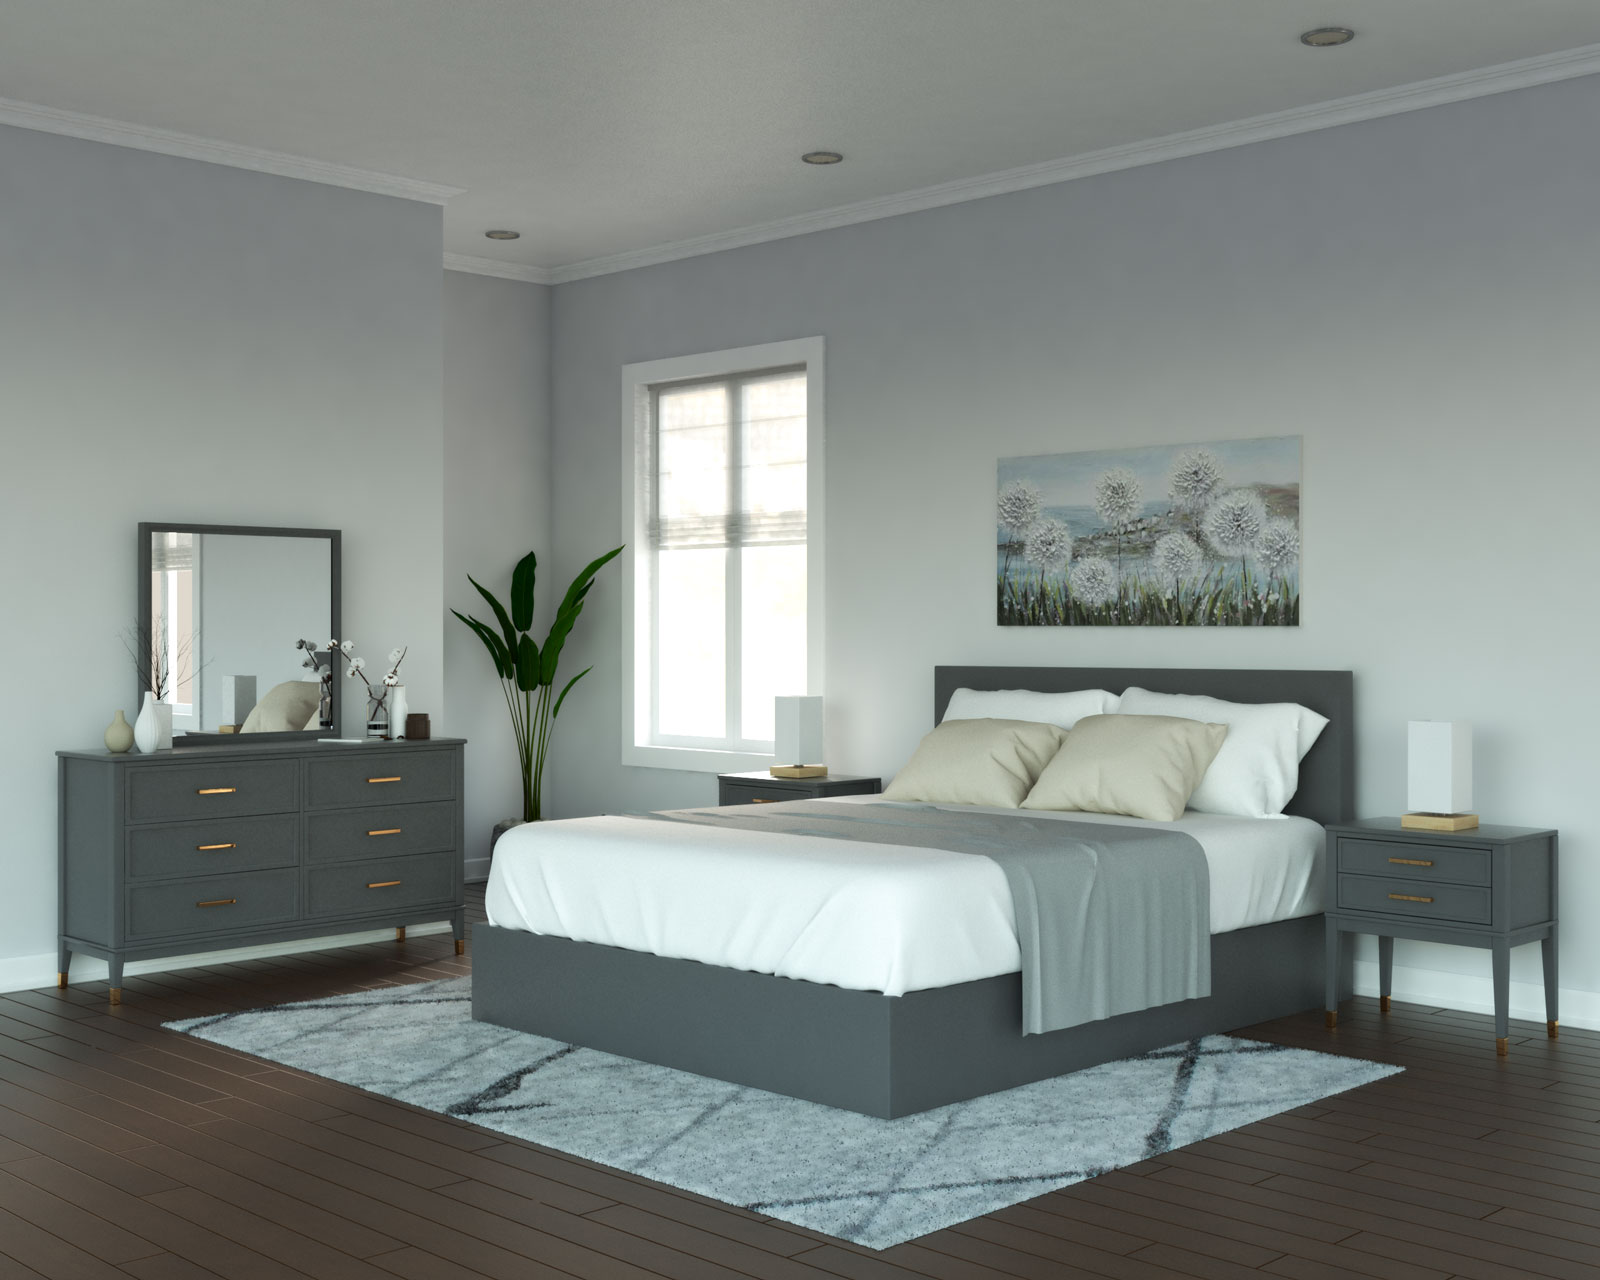 Light gray walls with gray furniture